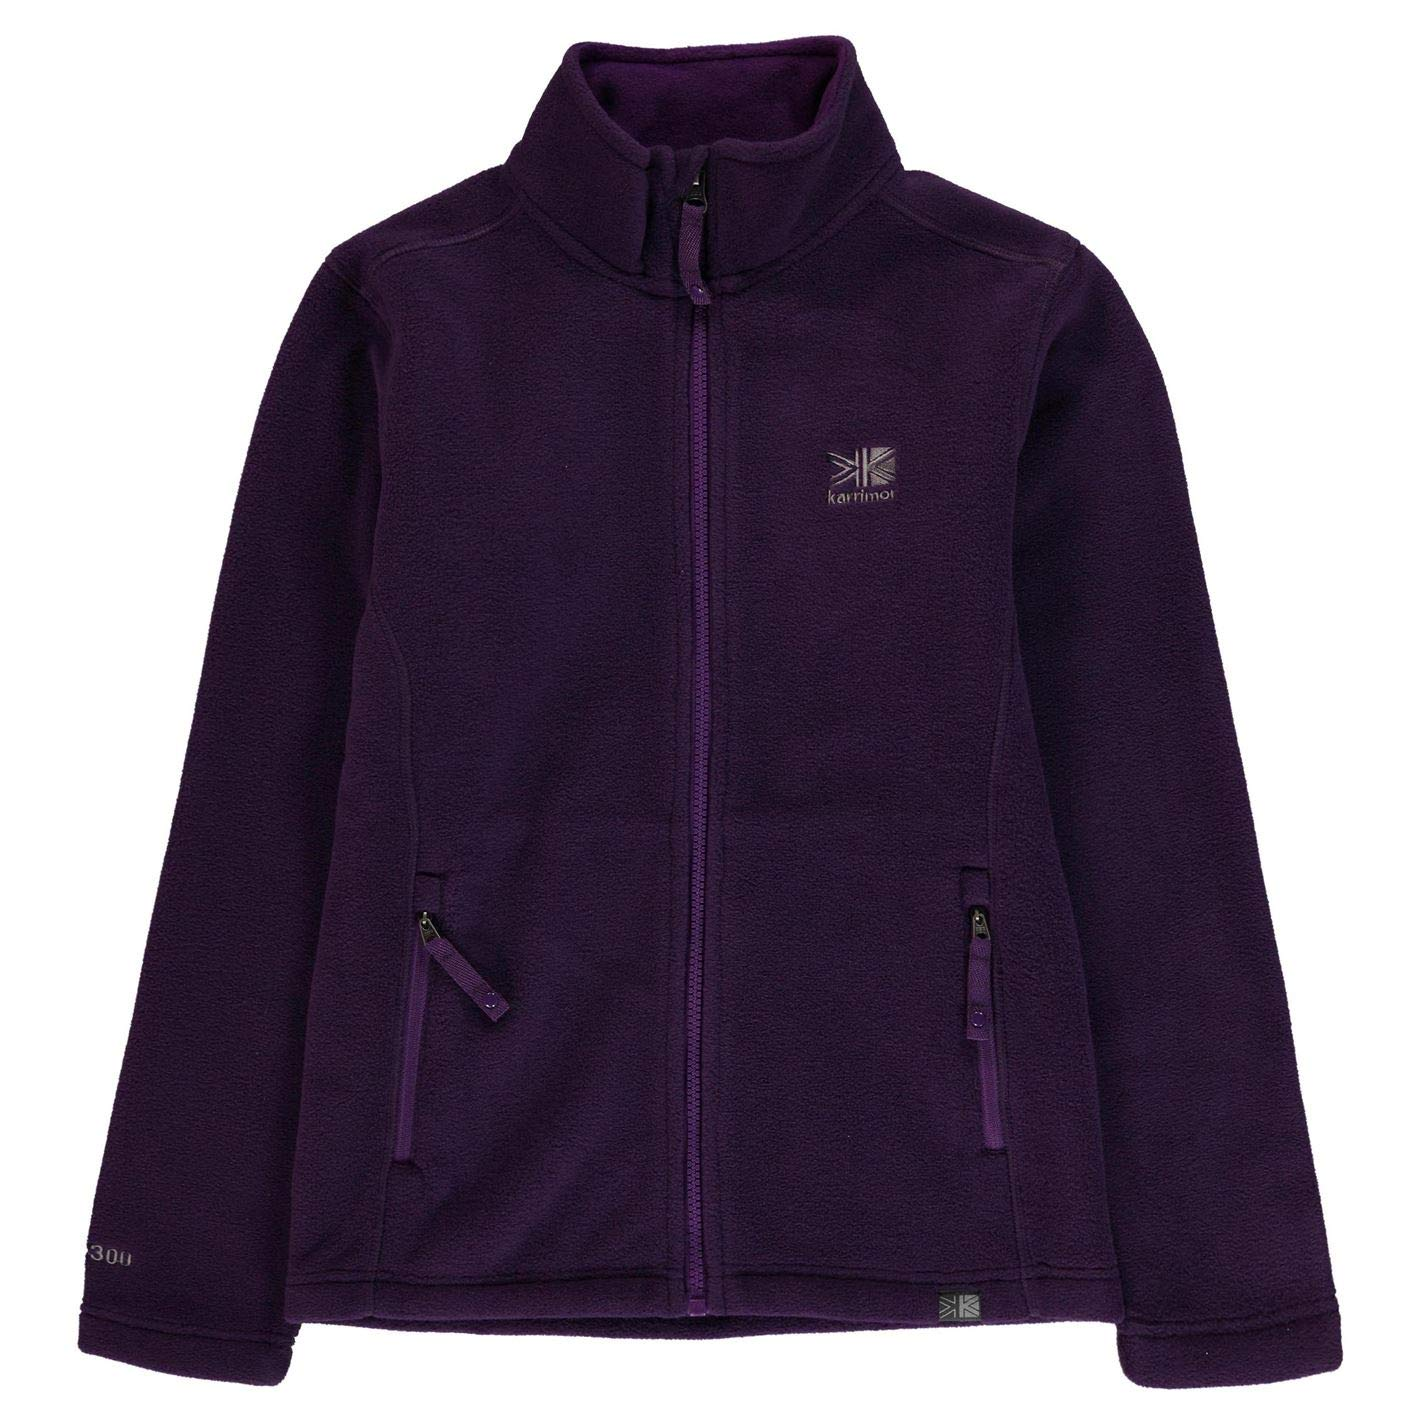 Karrimor Kids Fleece Jacket Junior Girls Thermal Up High